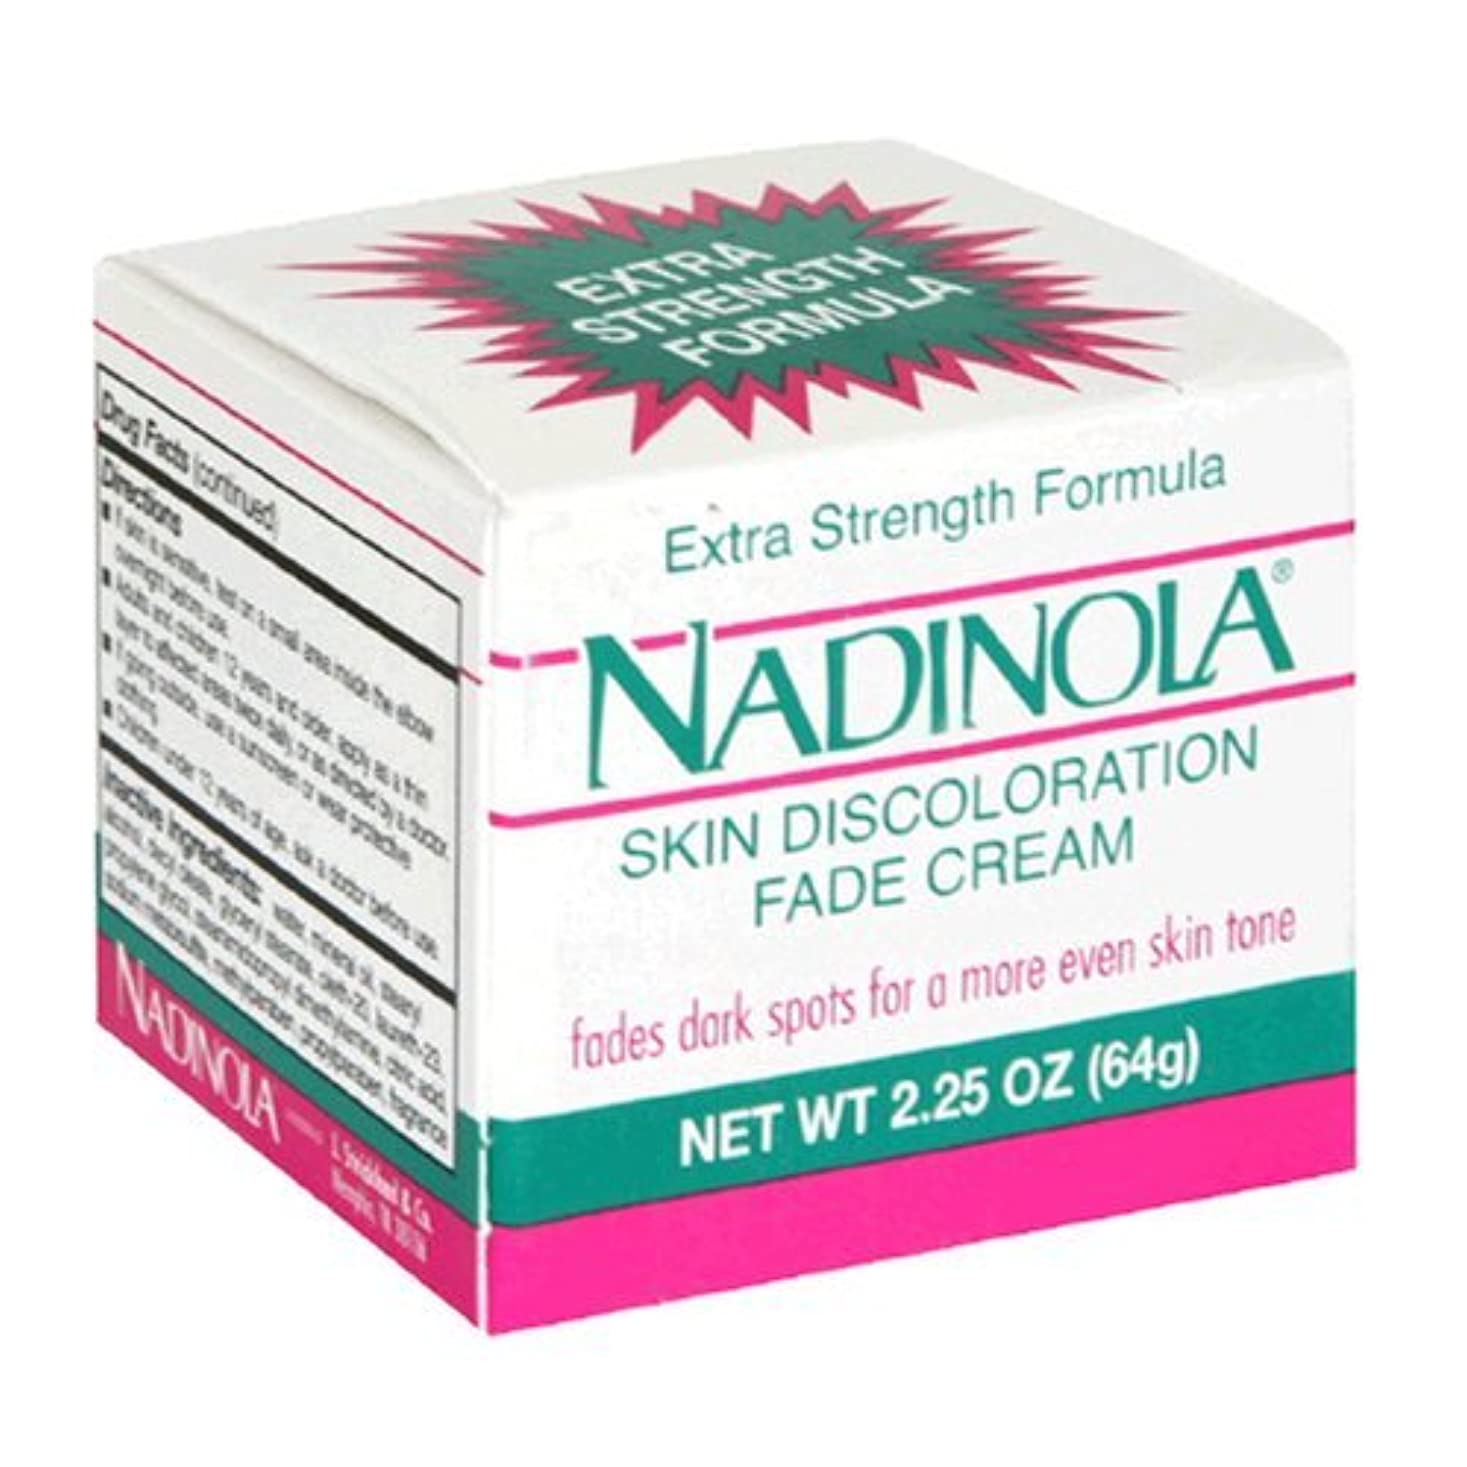 Nadinola Discoloration Fade Cream 2.25oz Extra Strength (並行輸入品)